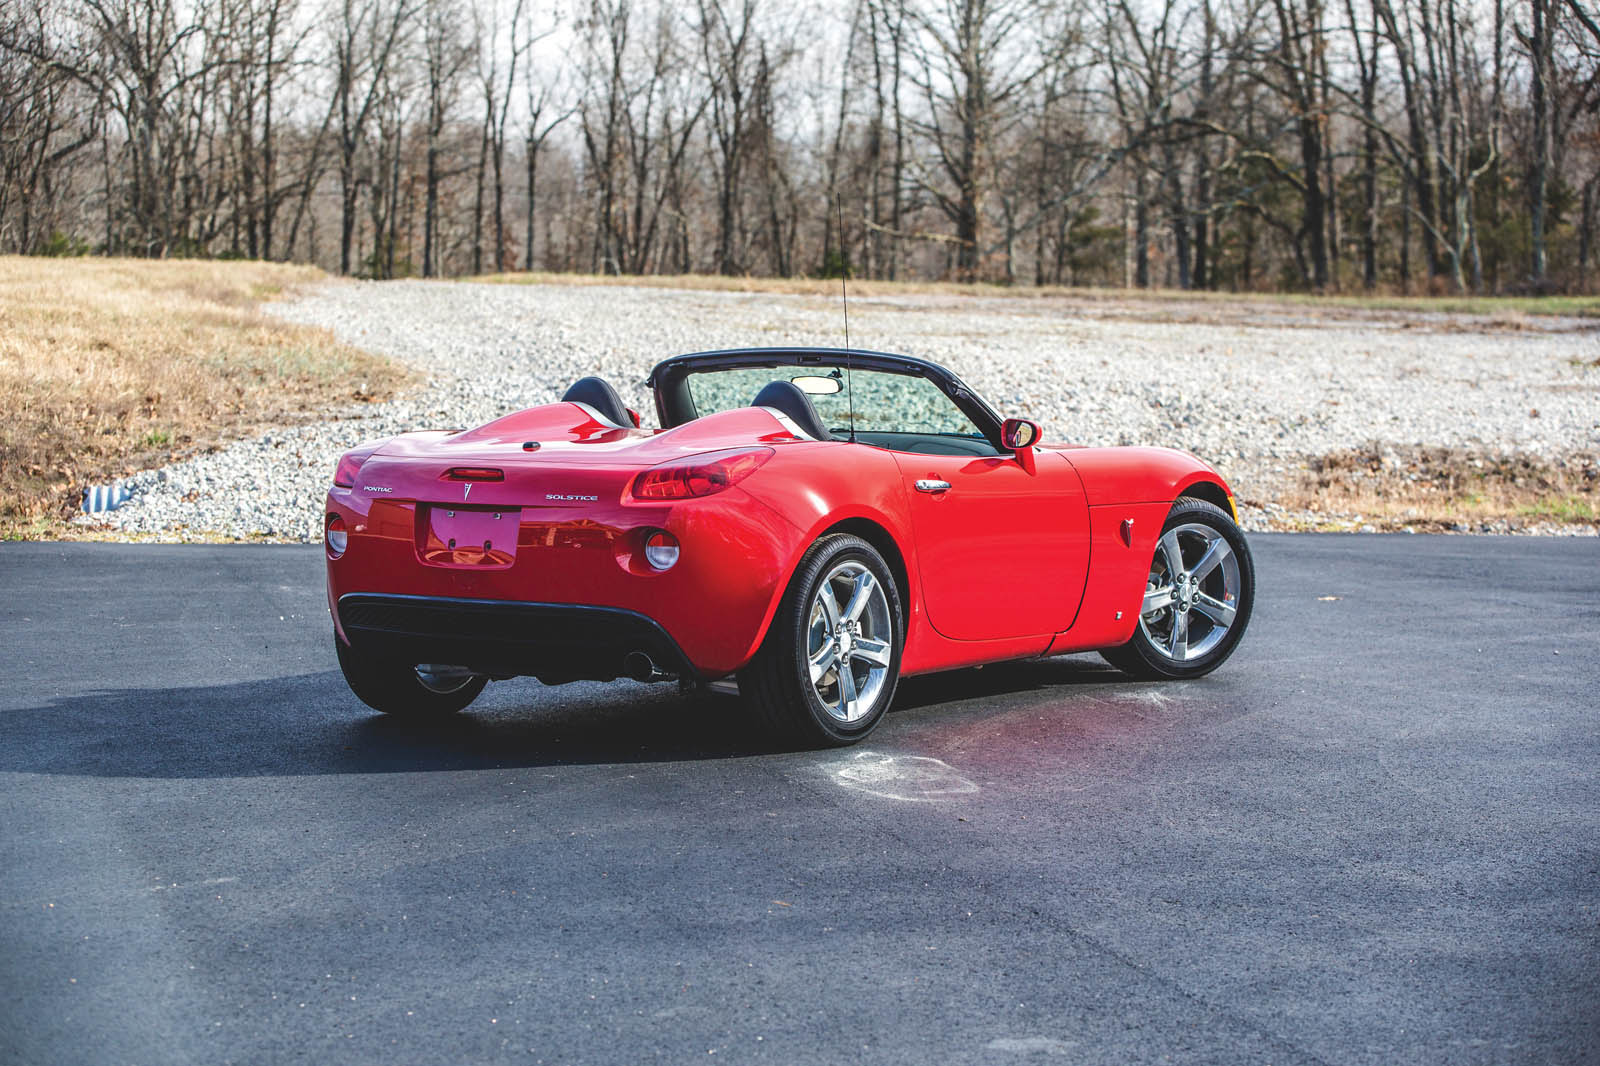 I Want To Sell My Car >> Want A (Nearly) New Pontiac Solstice? Here's Your Chance | Carscoops